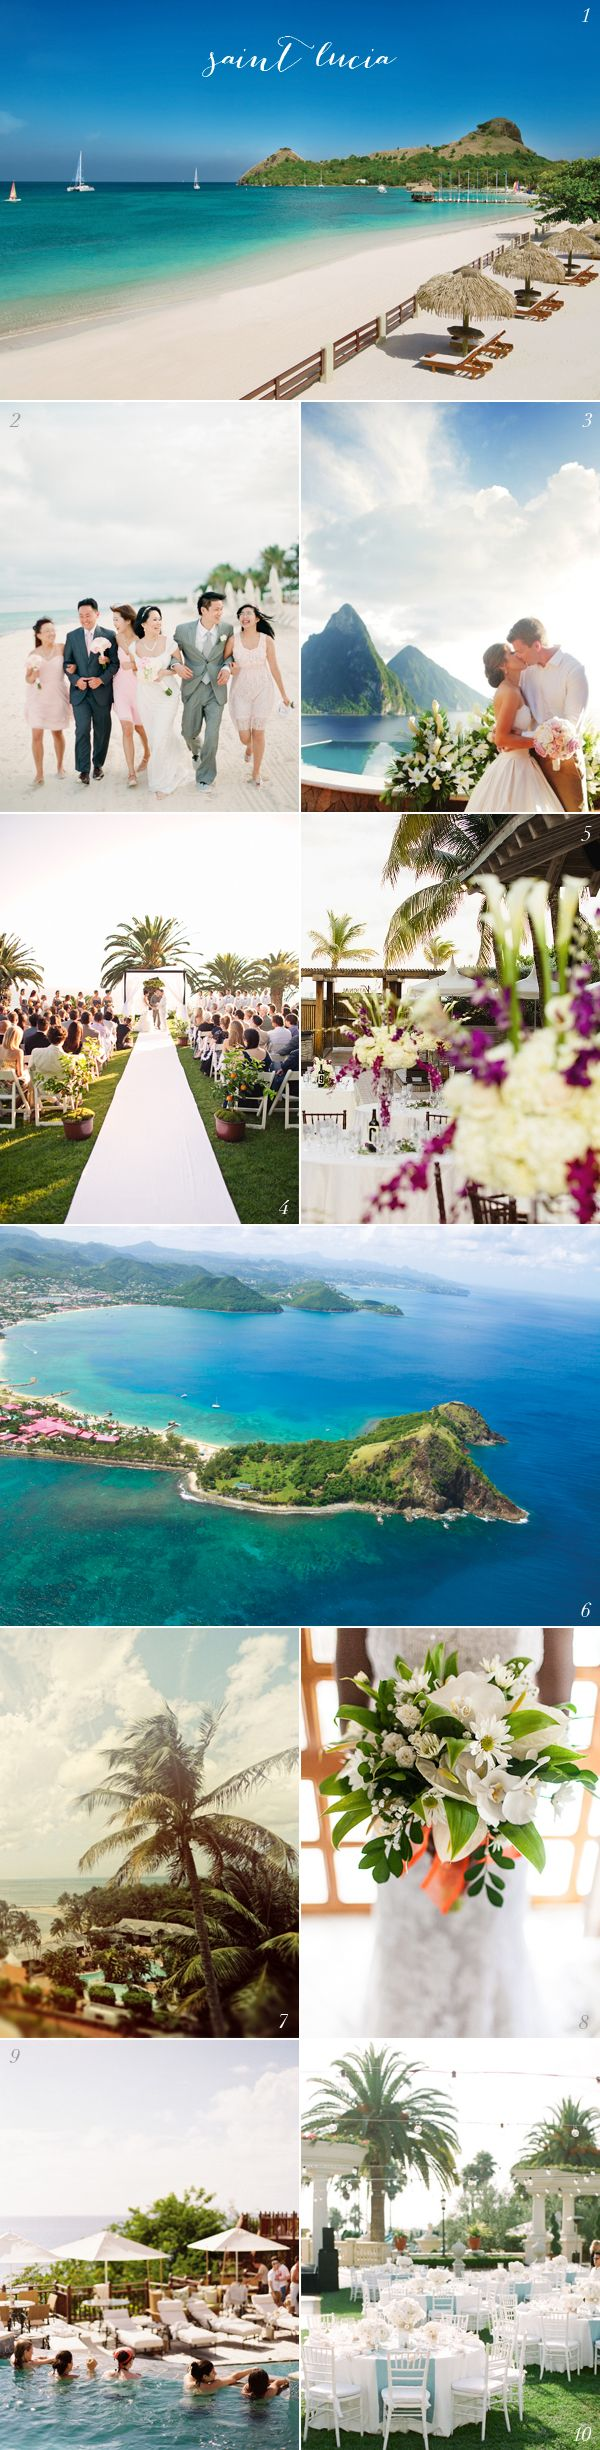 Get inspired: Check out this dreamy Saint Lucia destination #wedding!